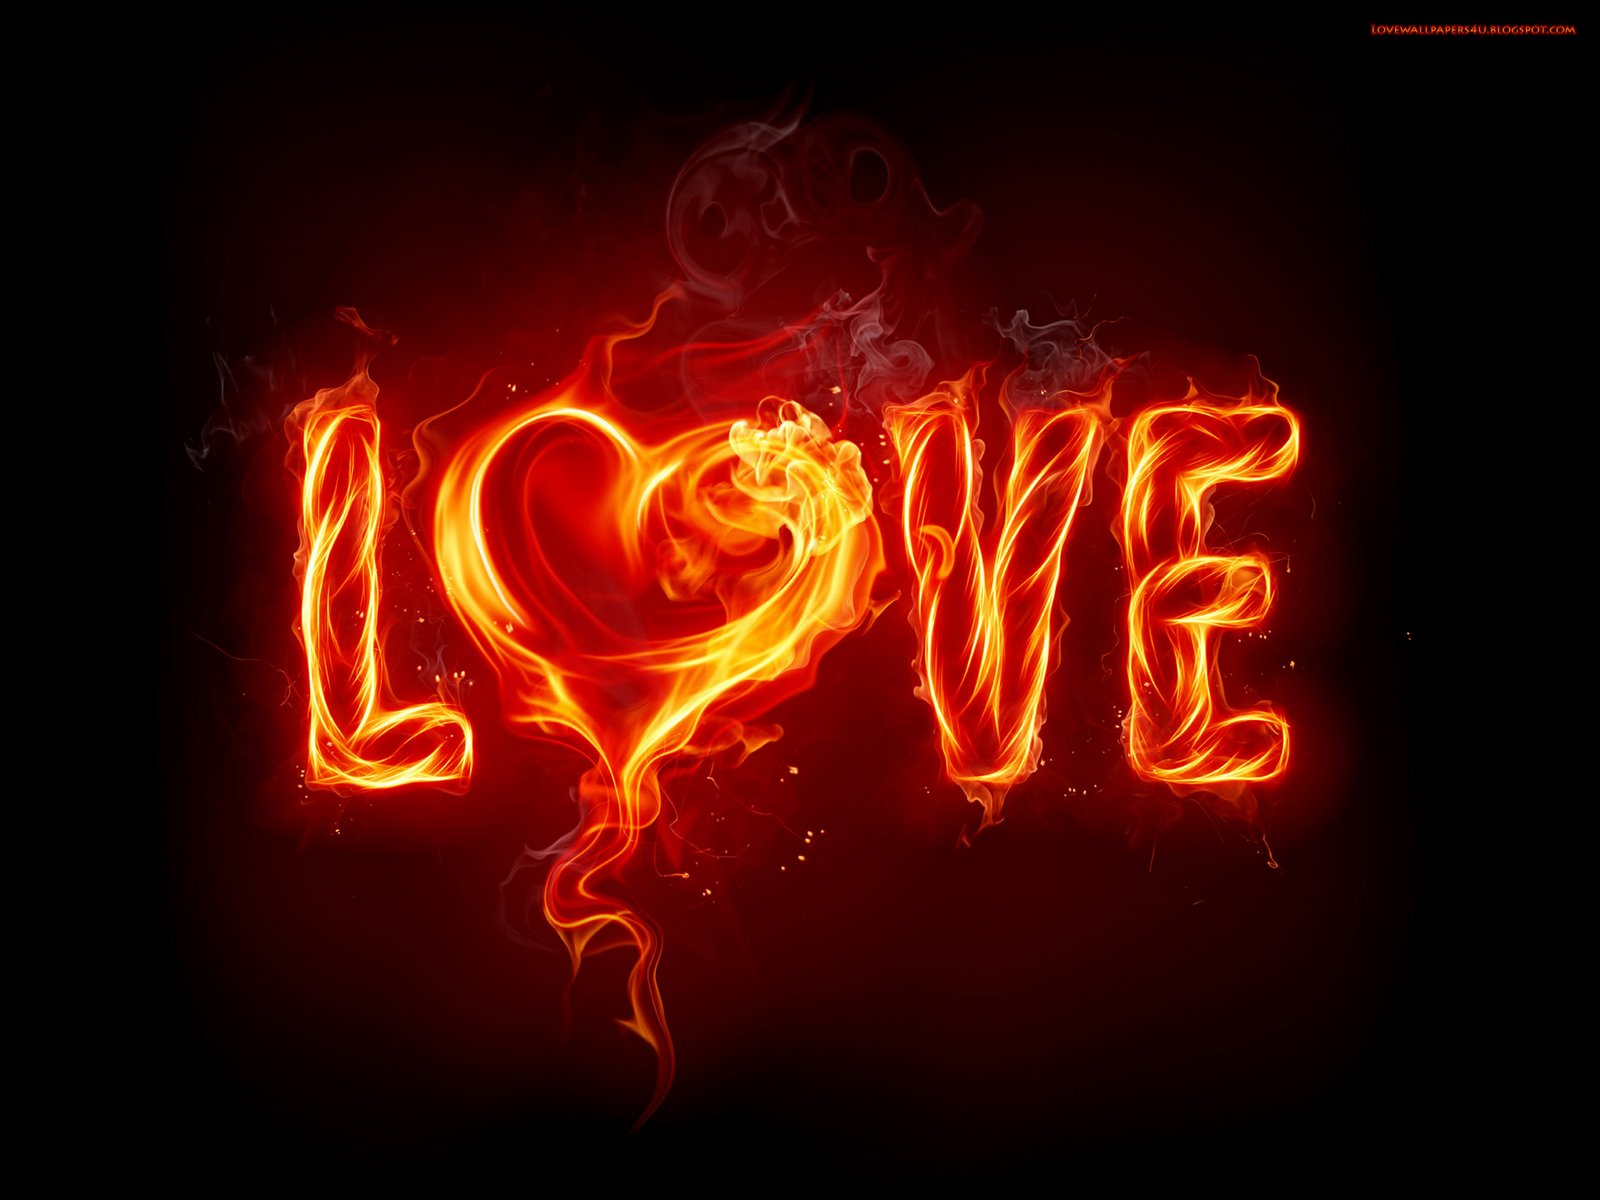 Love Expressing Wallpapers : How to express love, how to propose it?